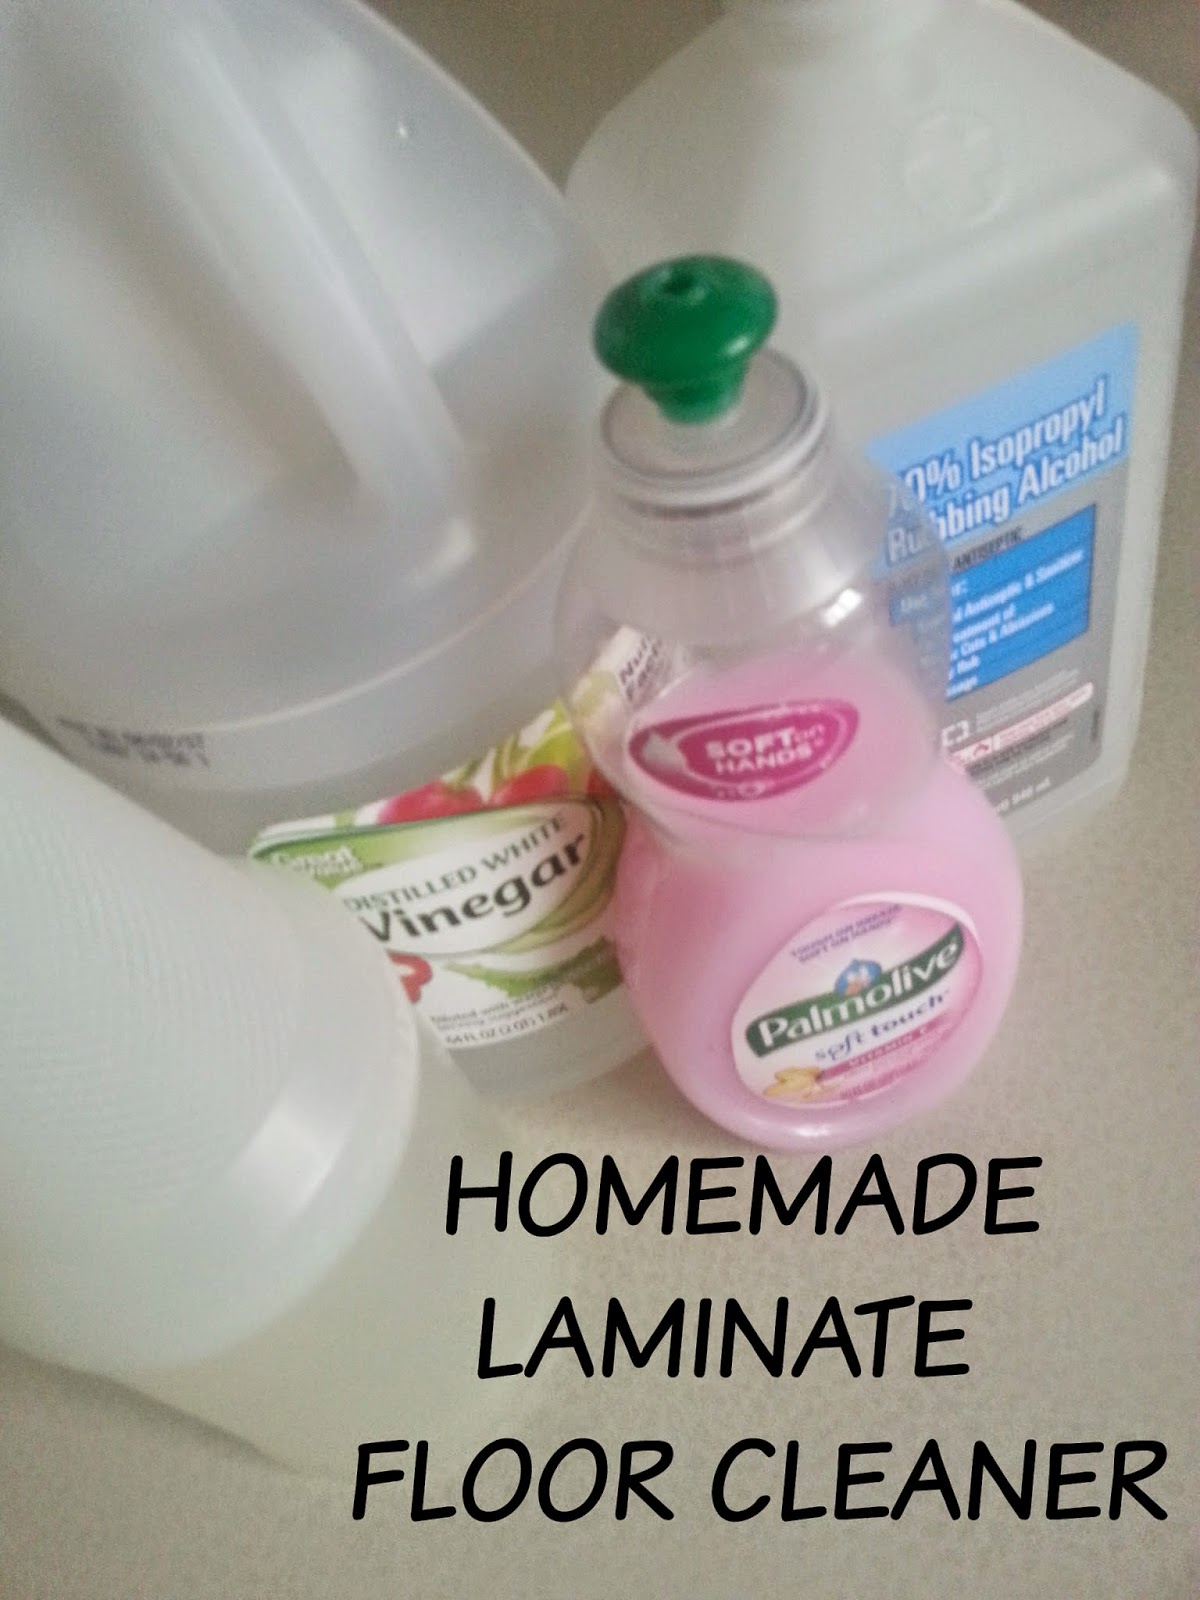 Homemade Laminate Floor Cleaner